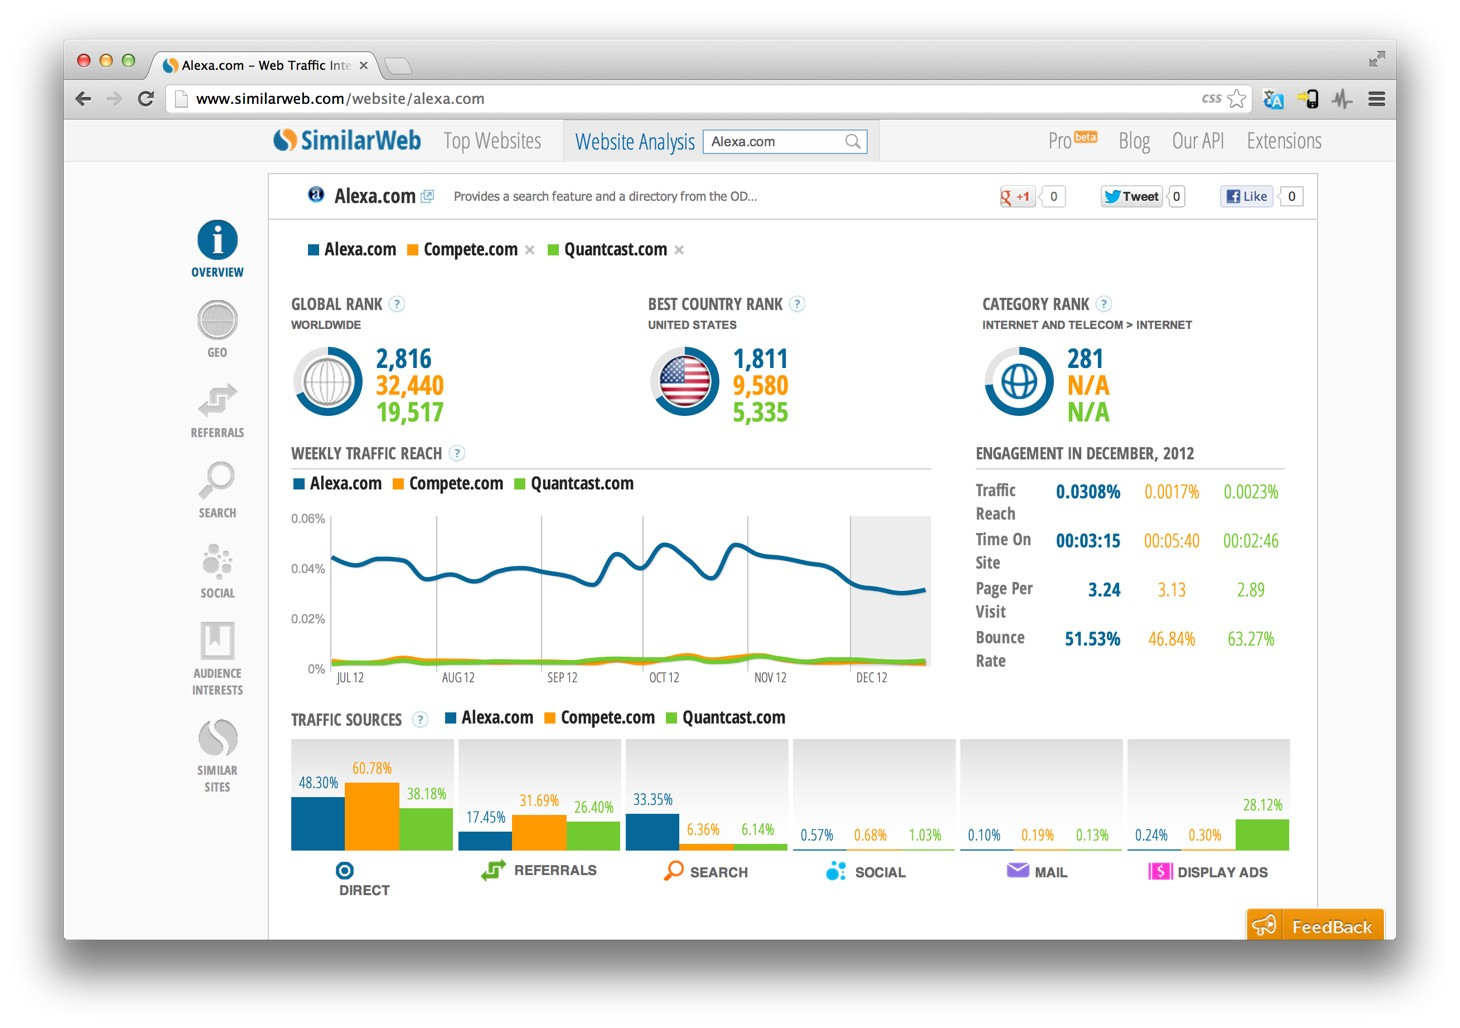 an analysis of web sites Web analytics is the measurement, collection, analysis and reporting of web data for purposes of understanding and optimizing web usage.